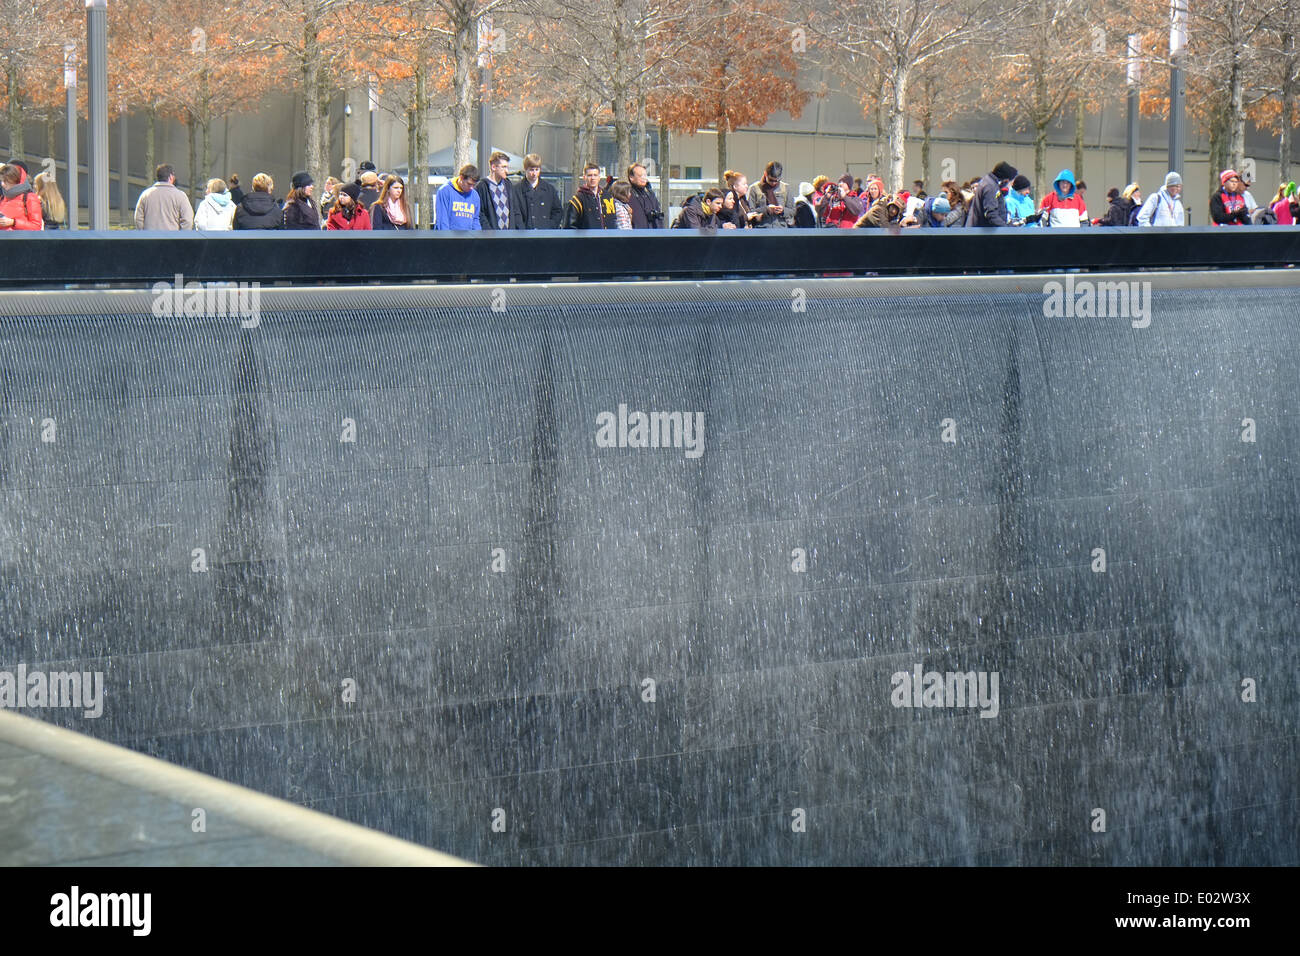 9/11 ground zero memorial site for the world trade towers, New York, USA Stock Photo